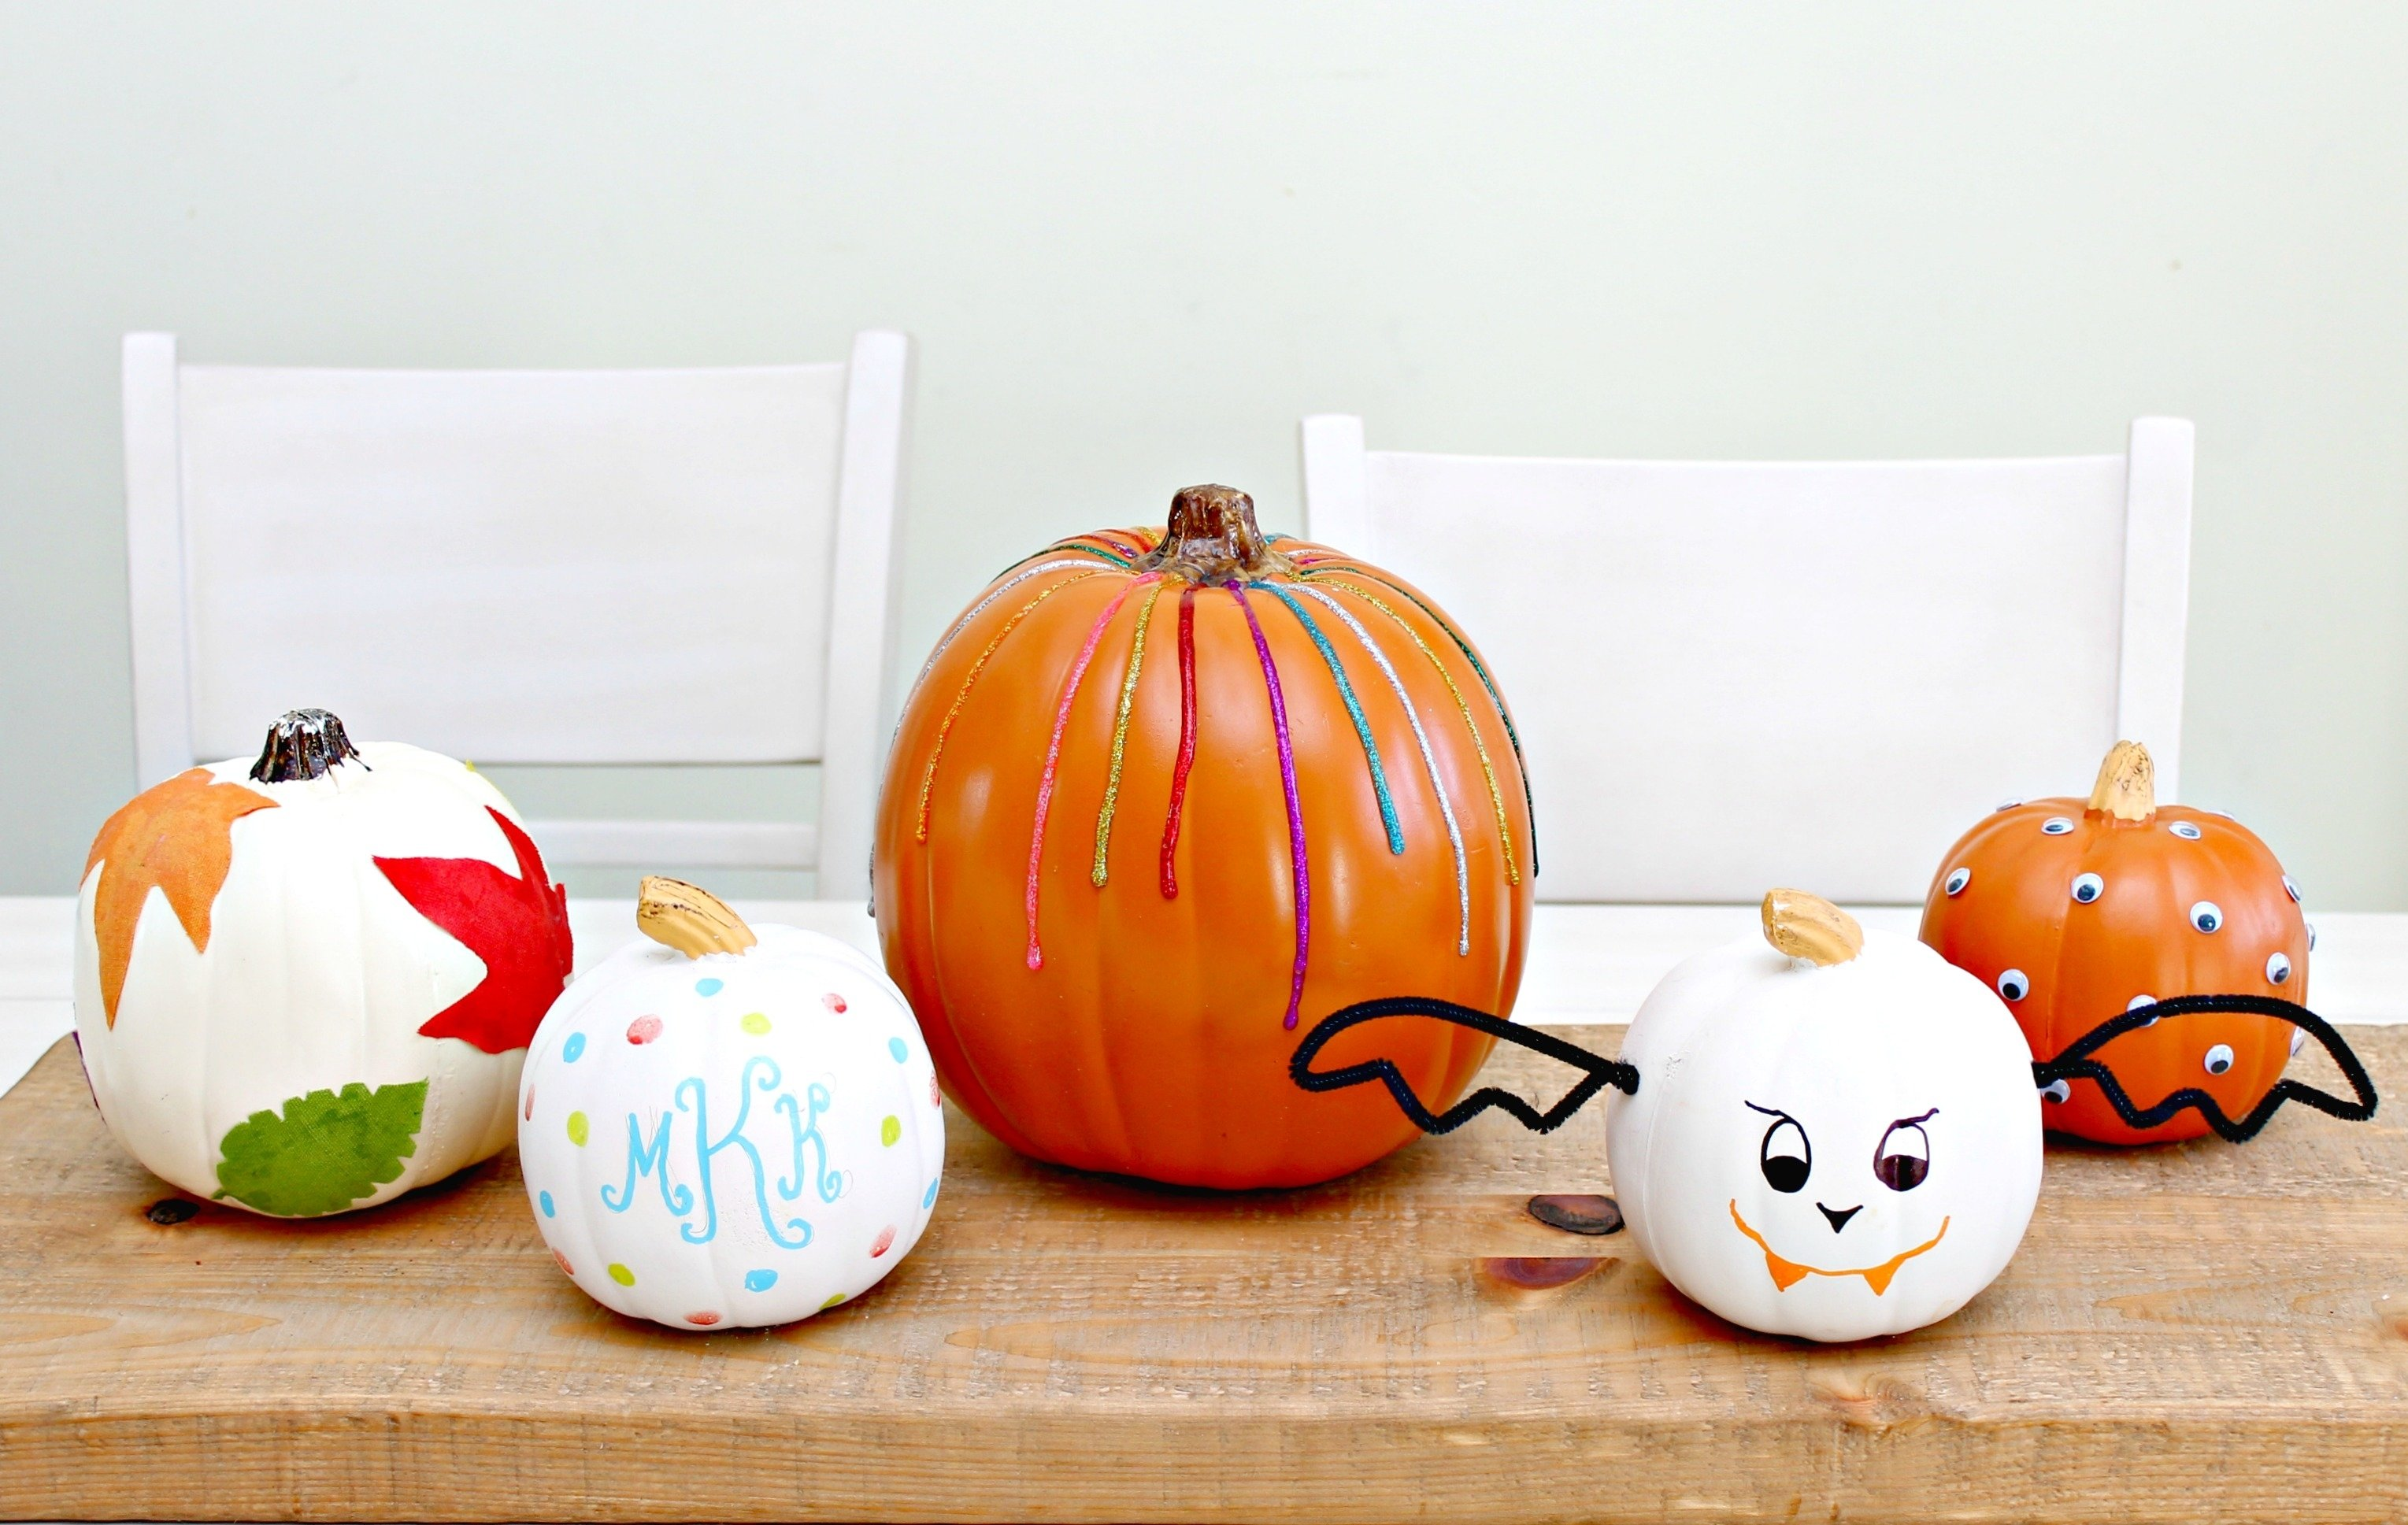 10 Lovely Cool Pumpkin Ideas Without Carving no carve pumpkin decorating ideas mom 4 real 4 2020